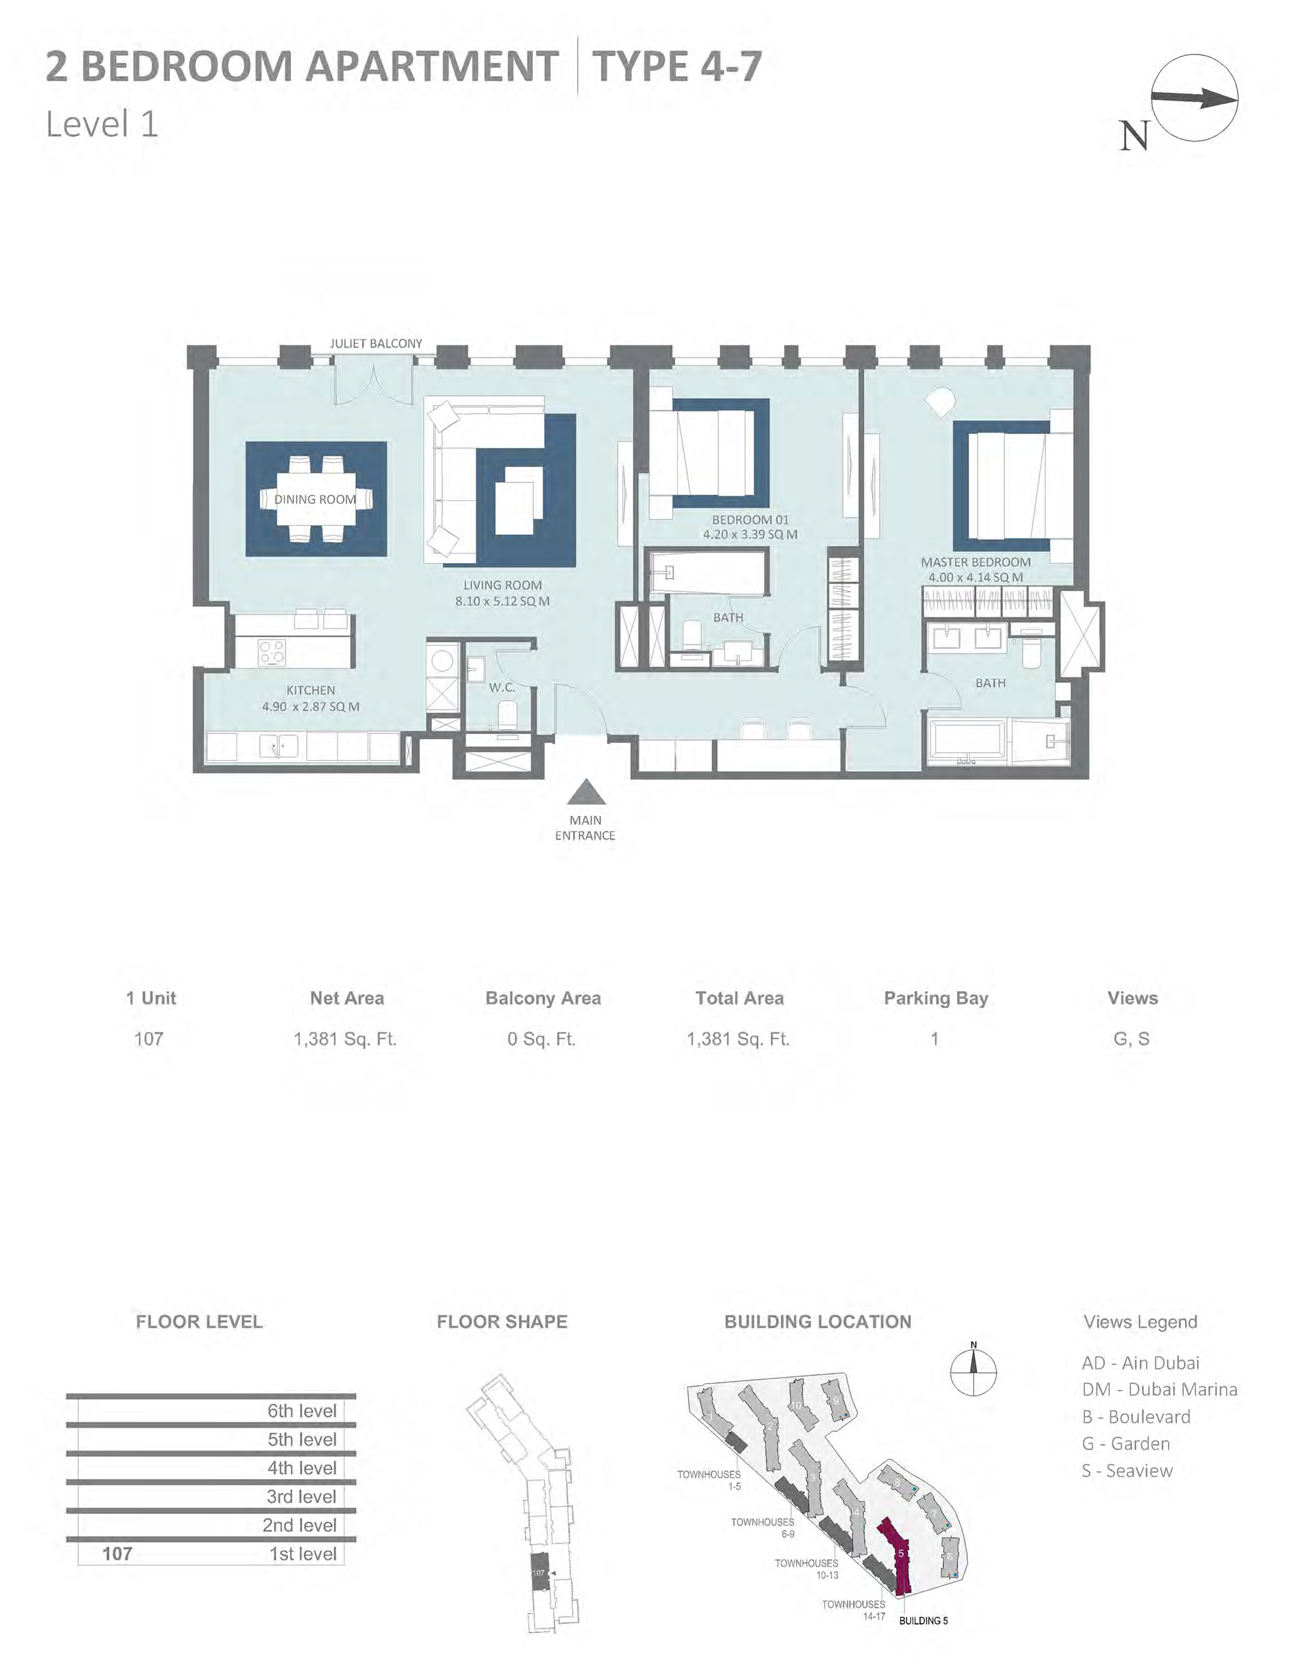 Building 5 - 2 Bedroom Type 4-7 Level 1 , Size 1381    sq. ft.